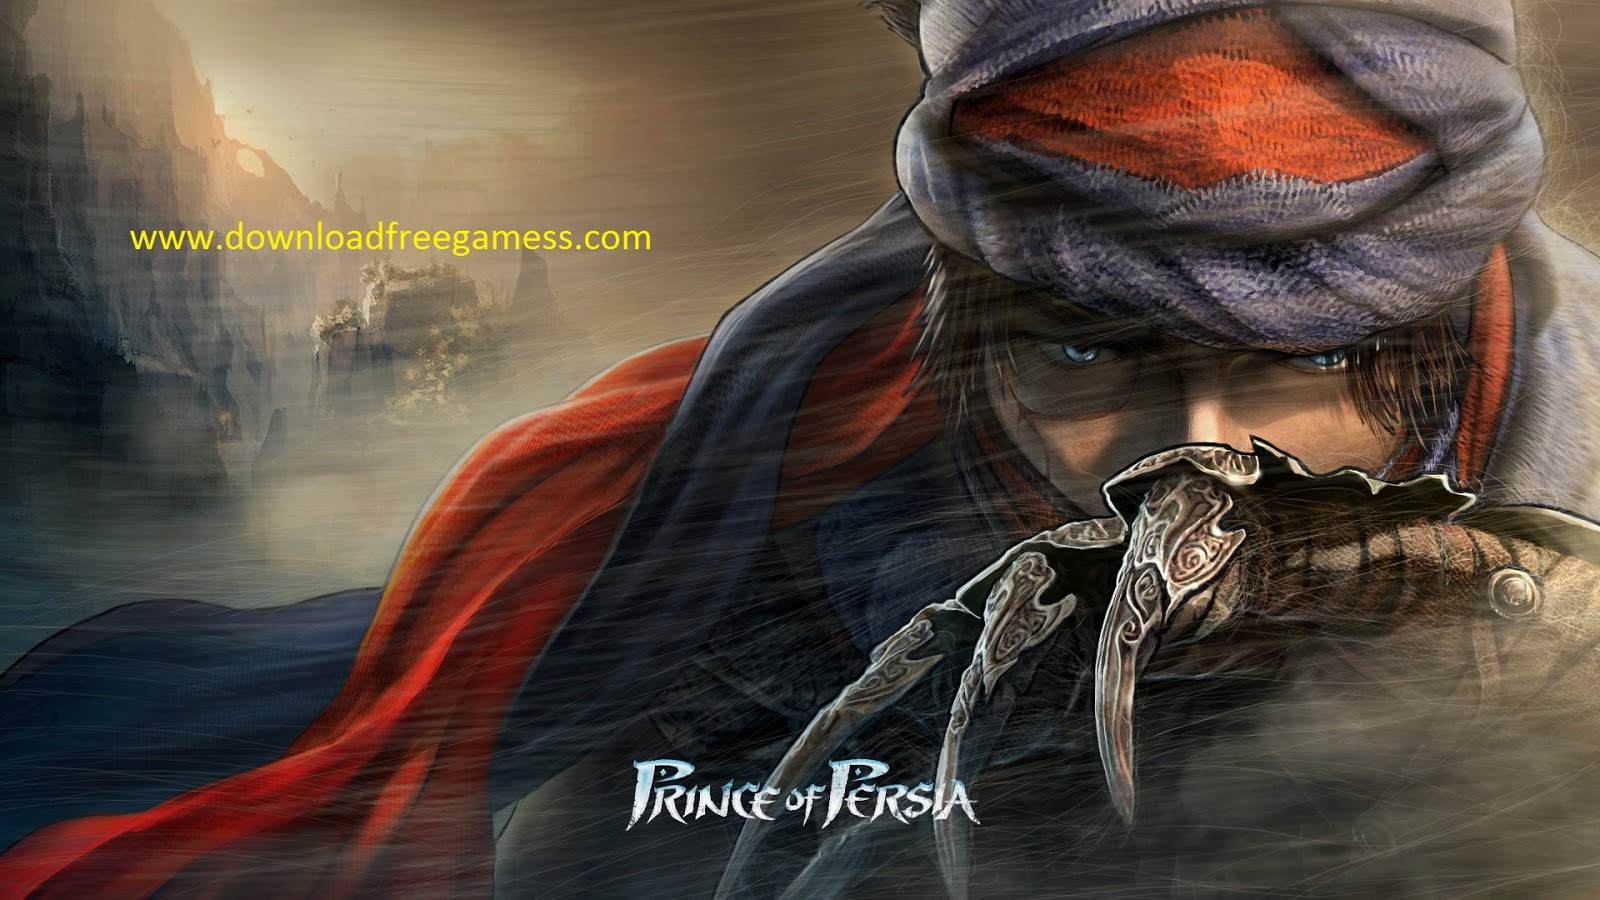 Download Prince of persia 2008